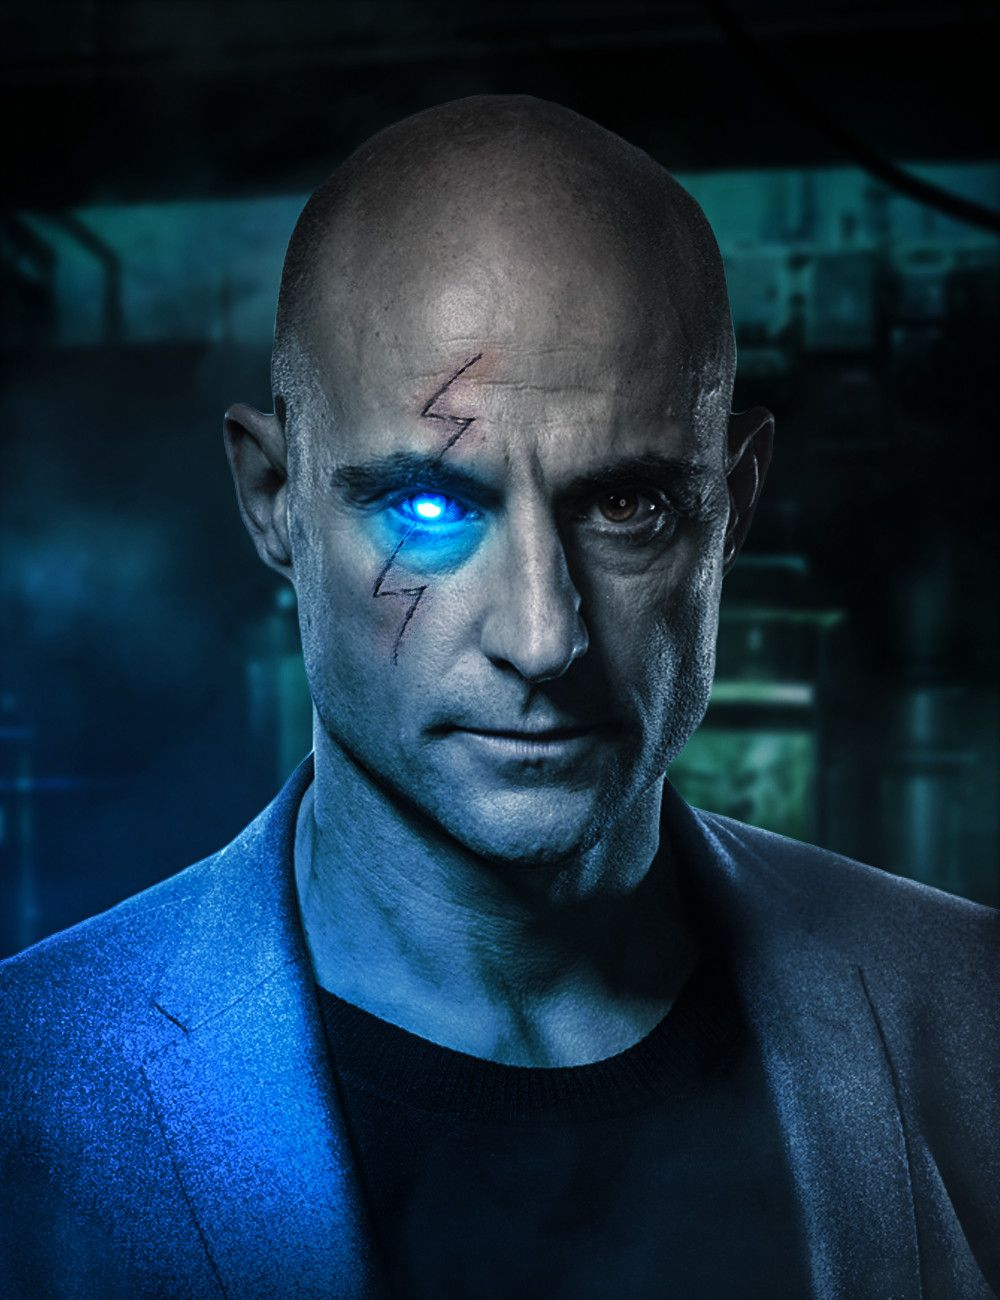 Dr. Sivana played by Mark Strong